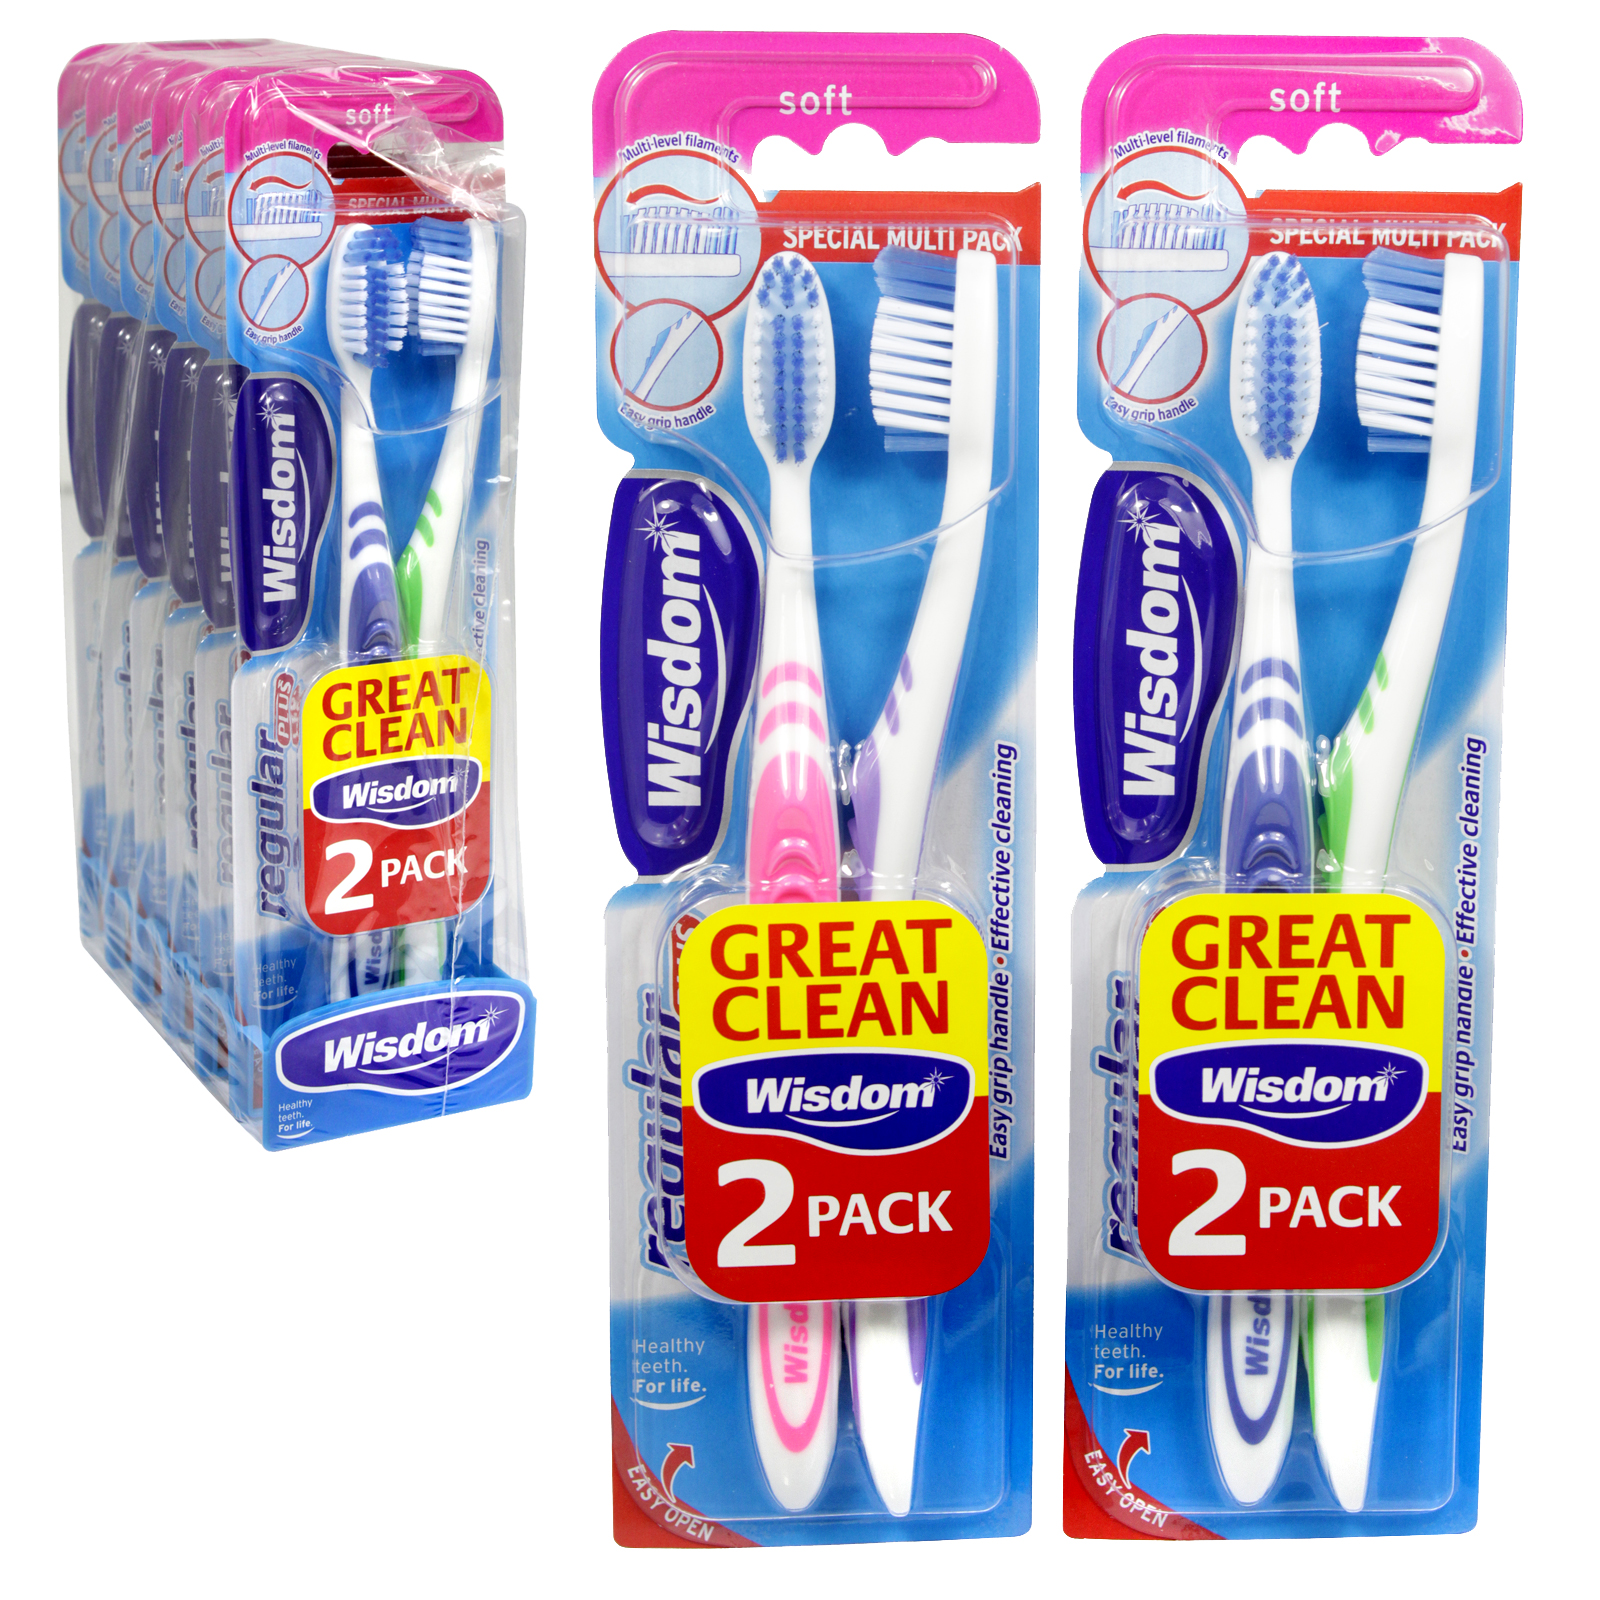 WISDOM REGULAR PLUS 2PK TOOTHBRUSHES SOFT X6